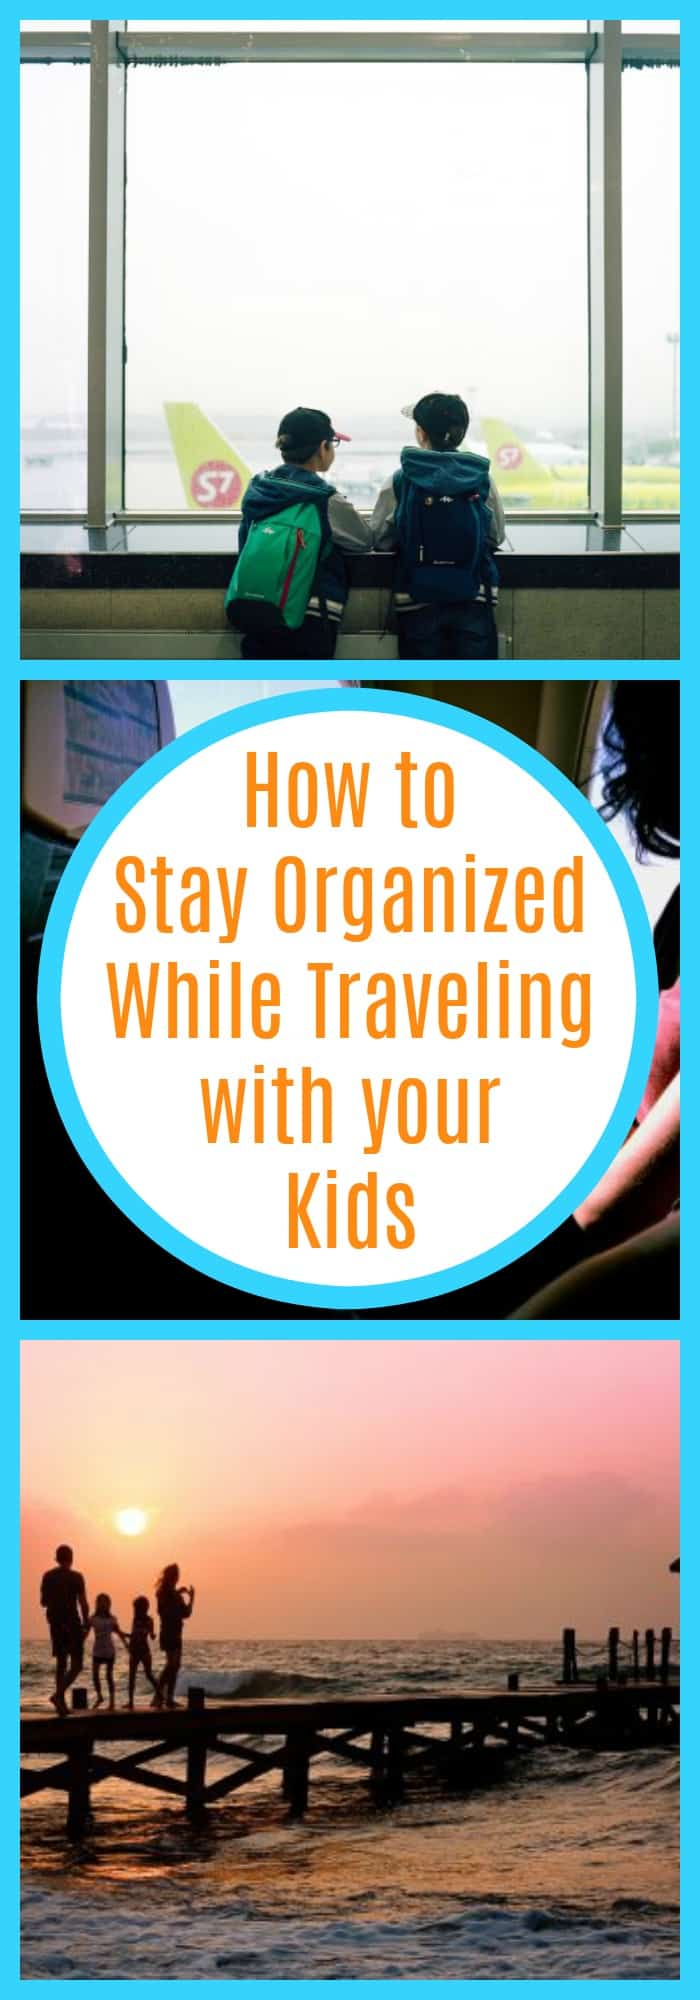 Parenting--How to Stay Organized While Traveling with Your Kids--The Organized Mom